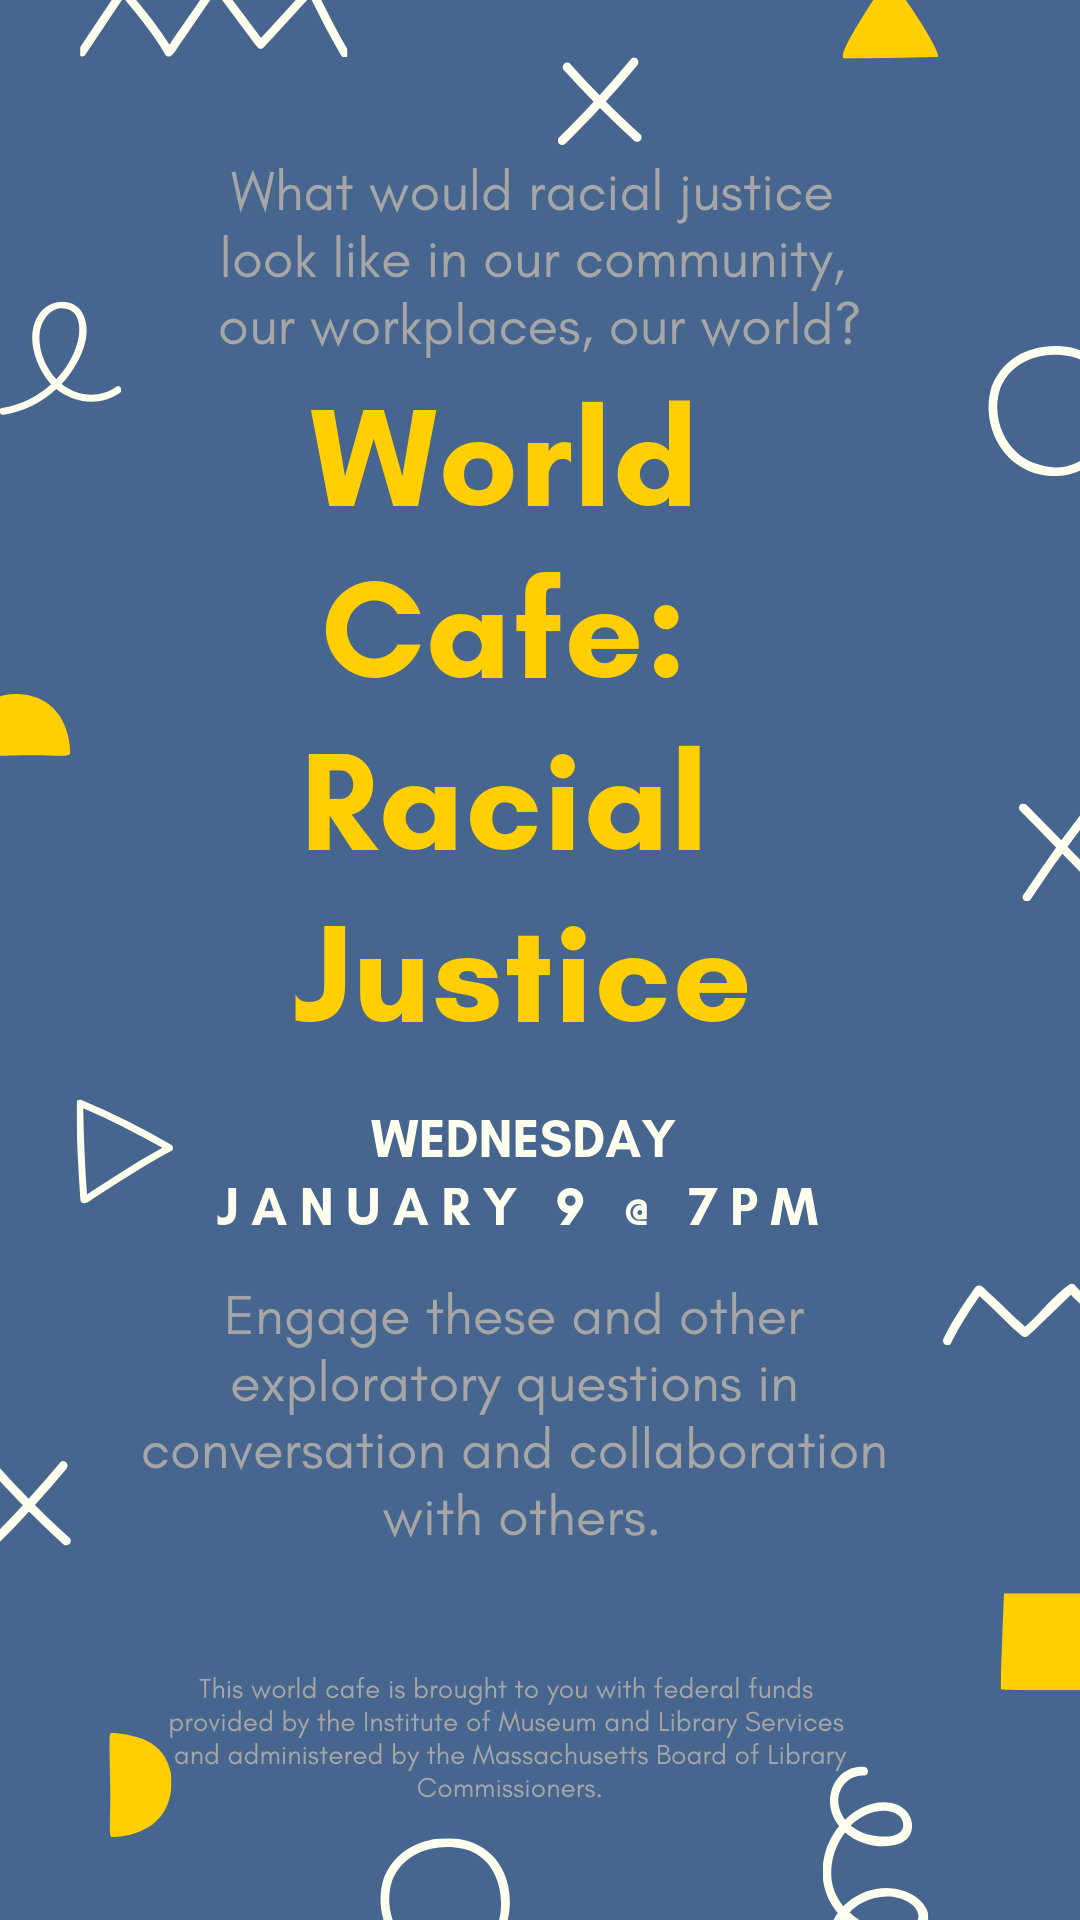 World Cafe: Racial Justice